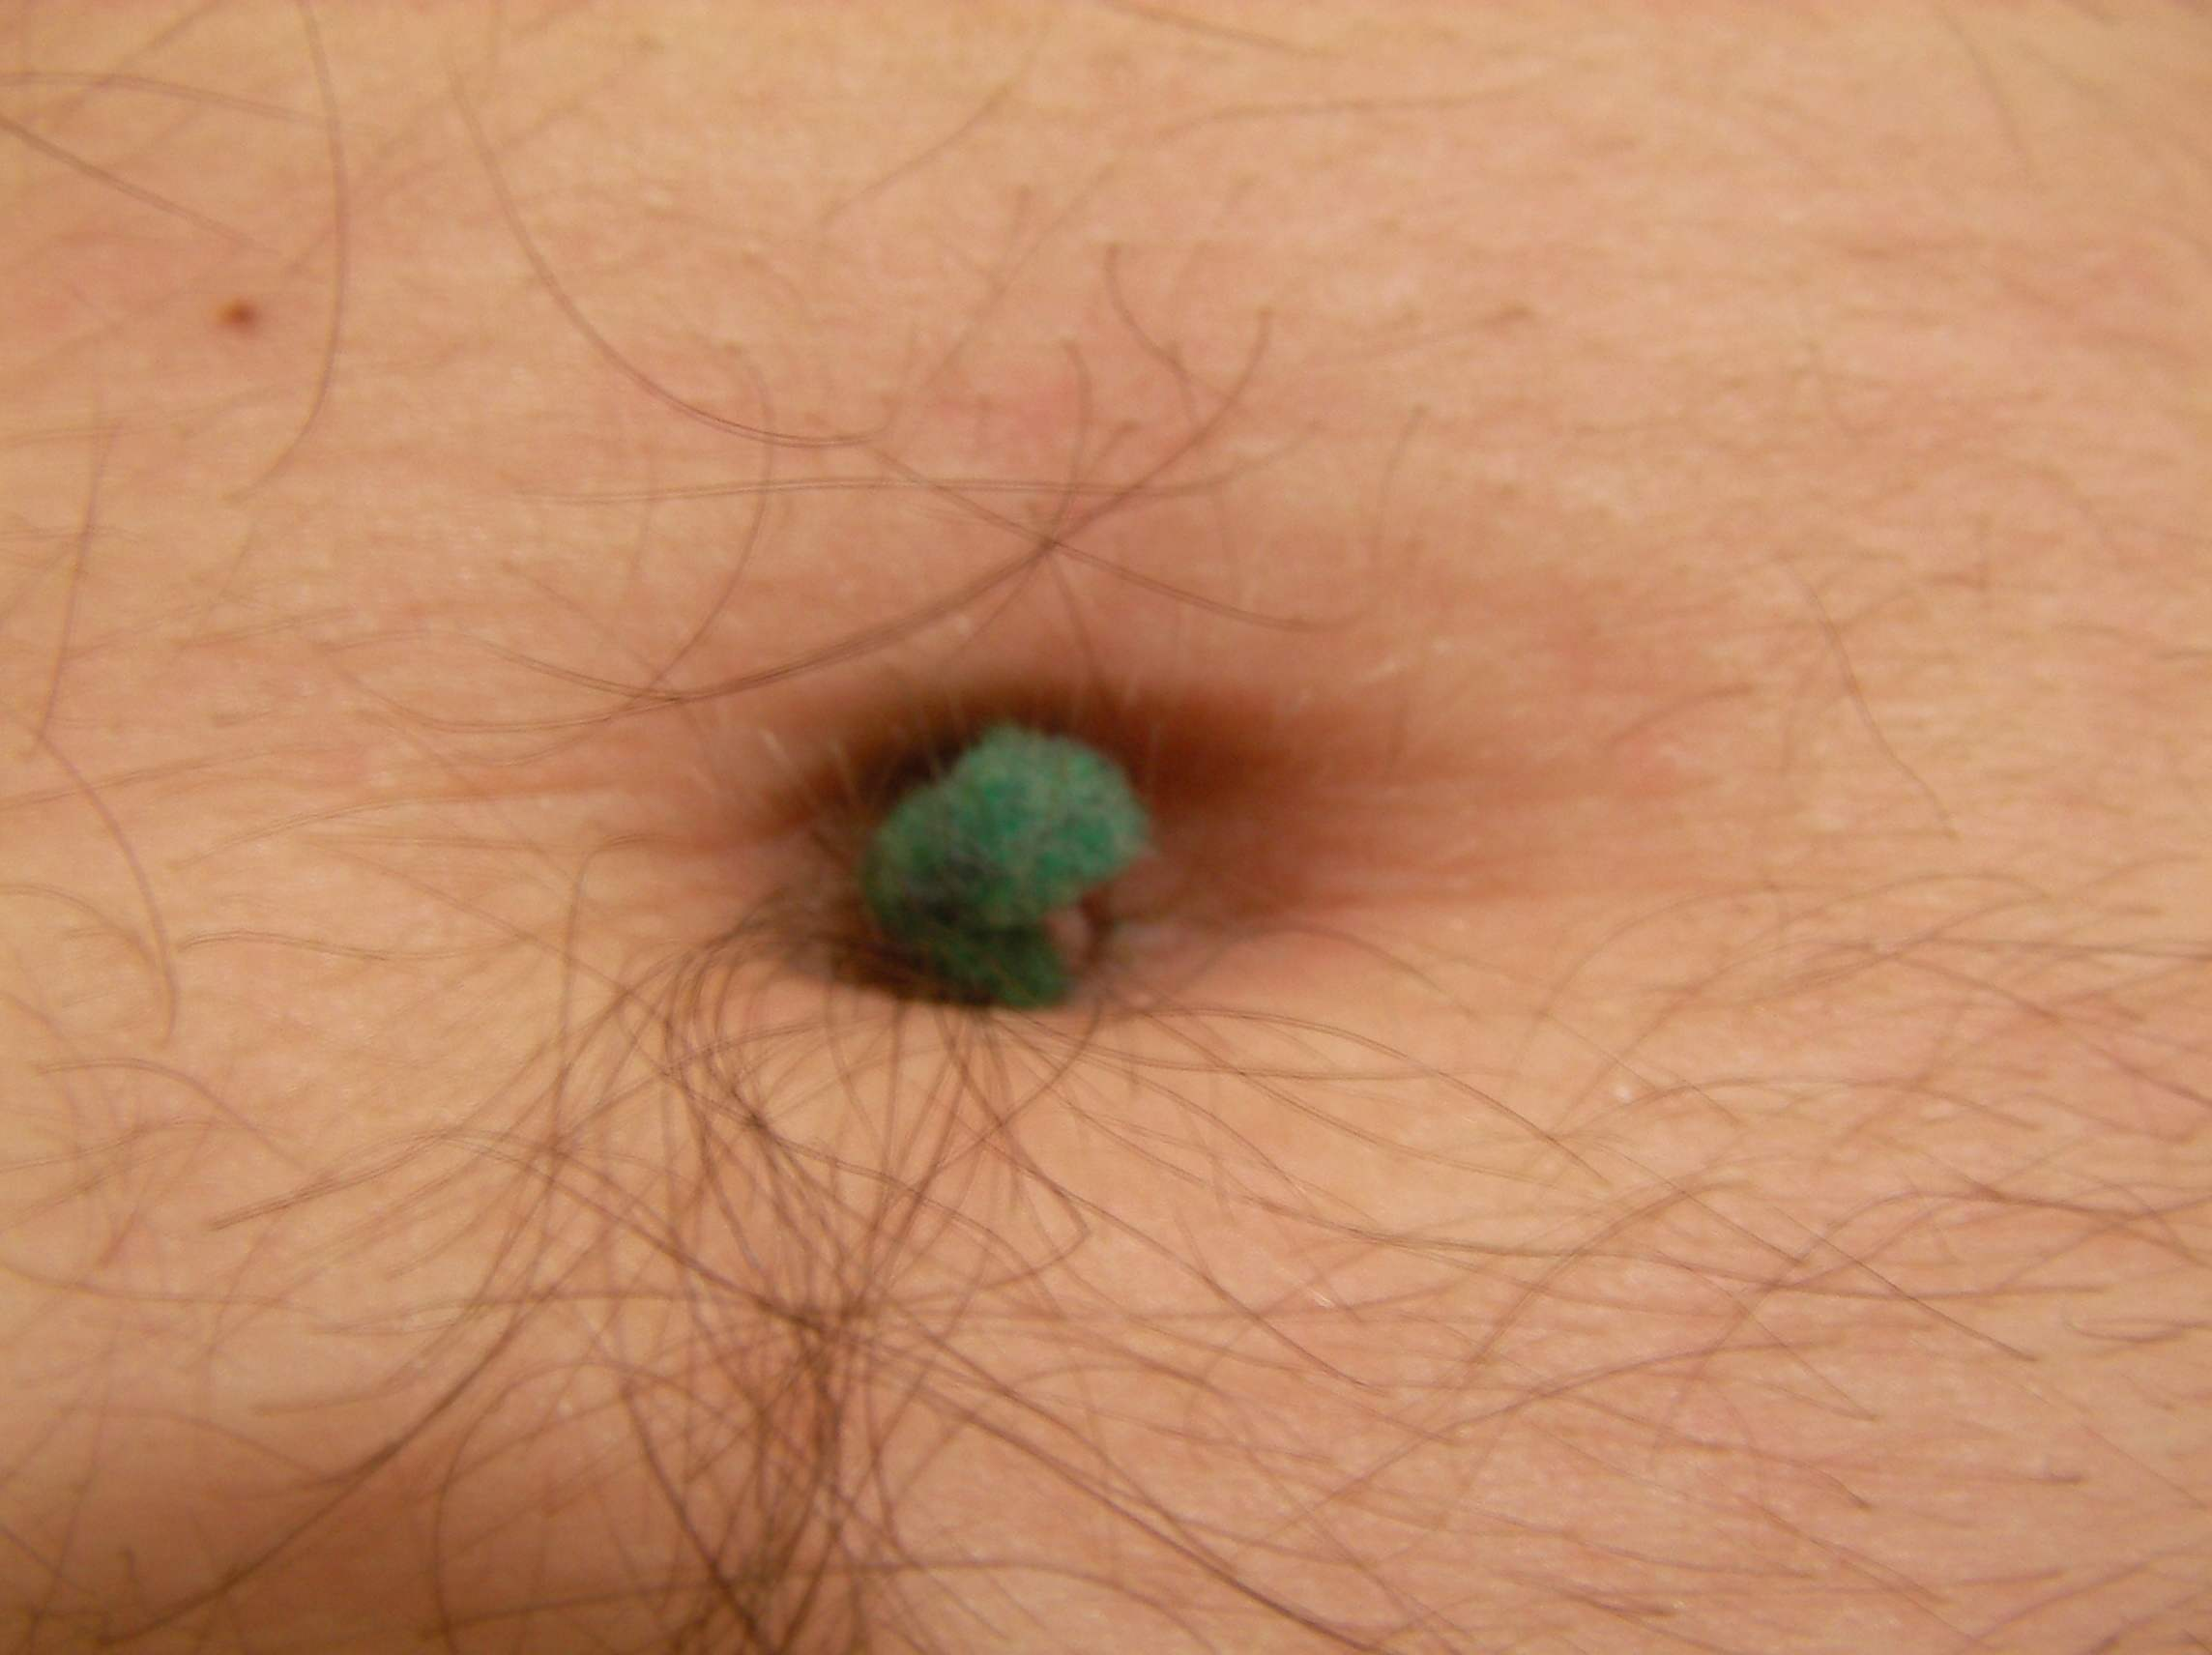 The Secrets Of Belly Button Fluff Discovered: Bluff Science